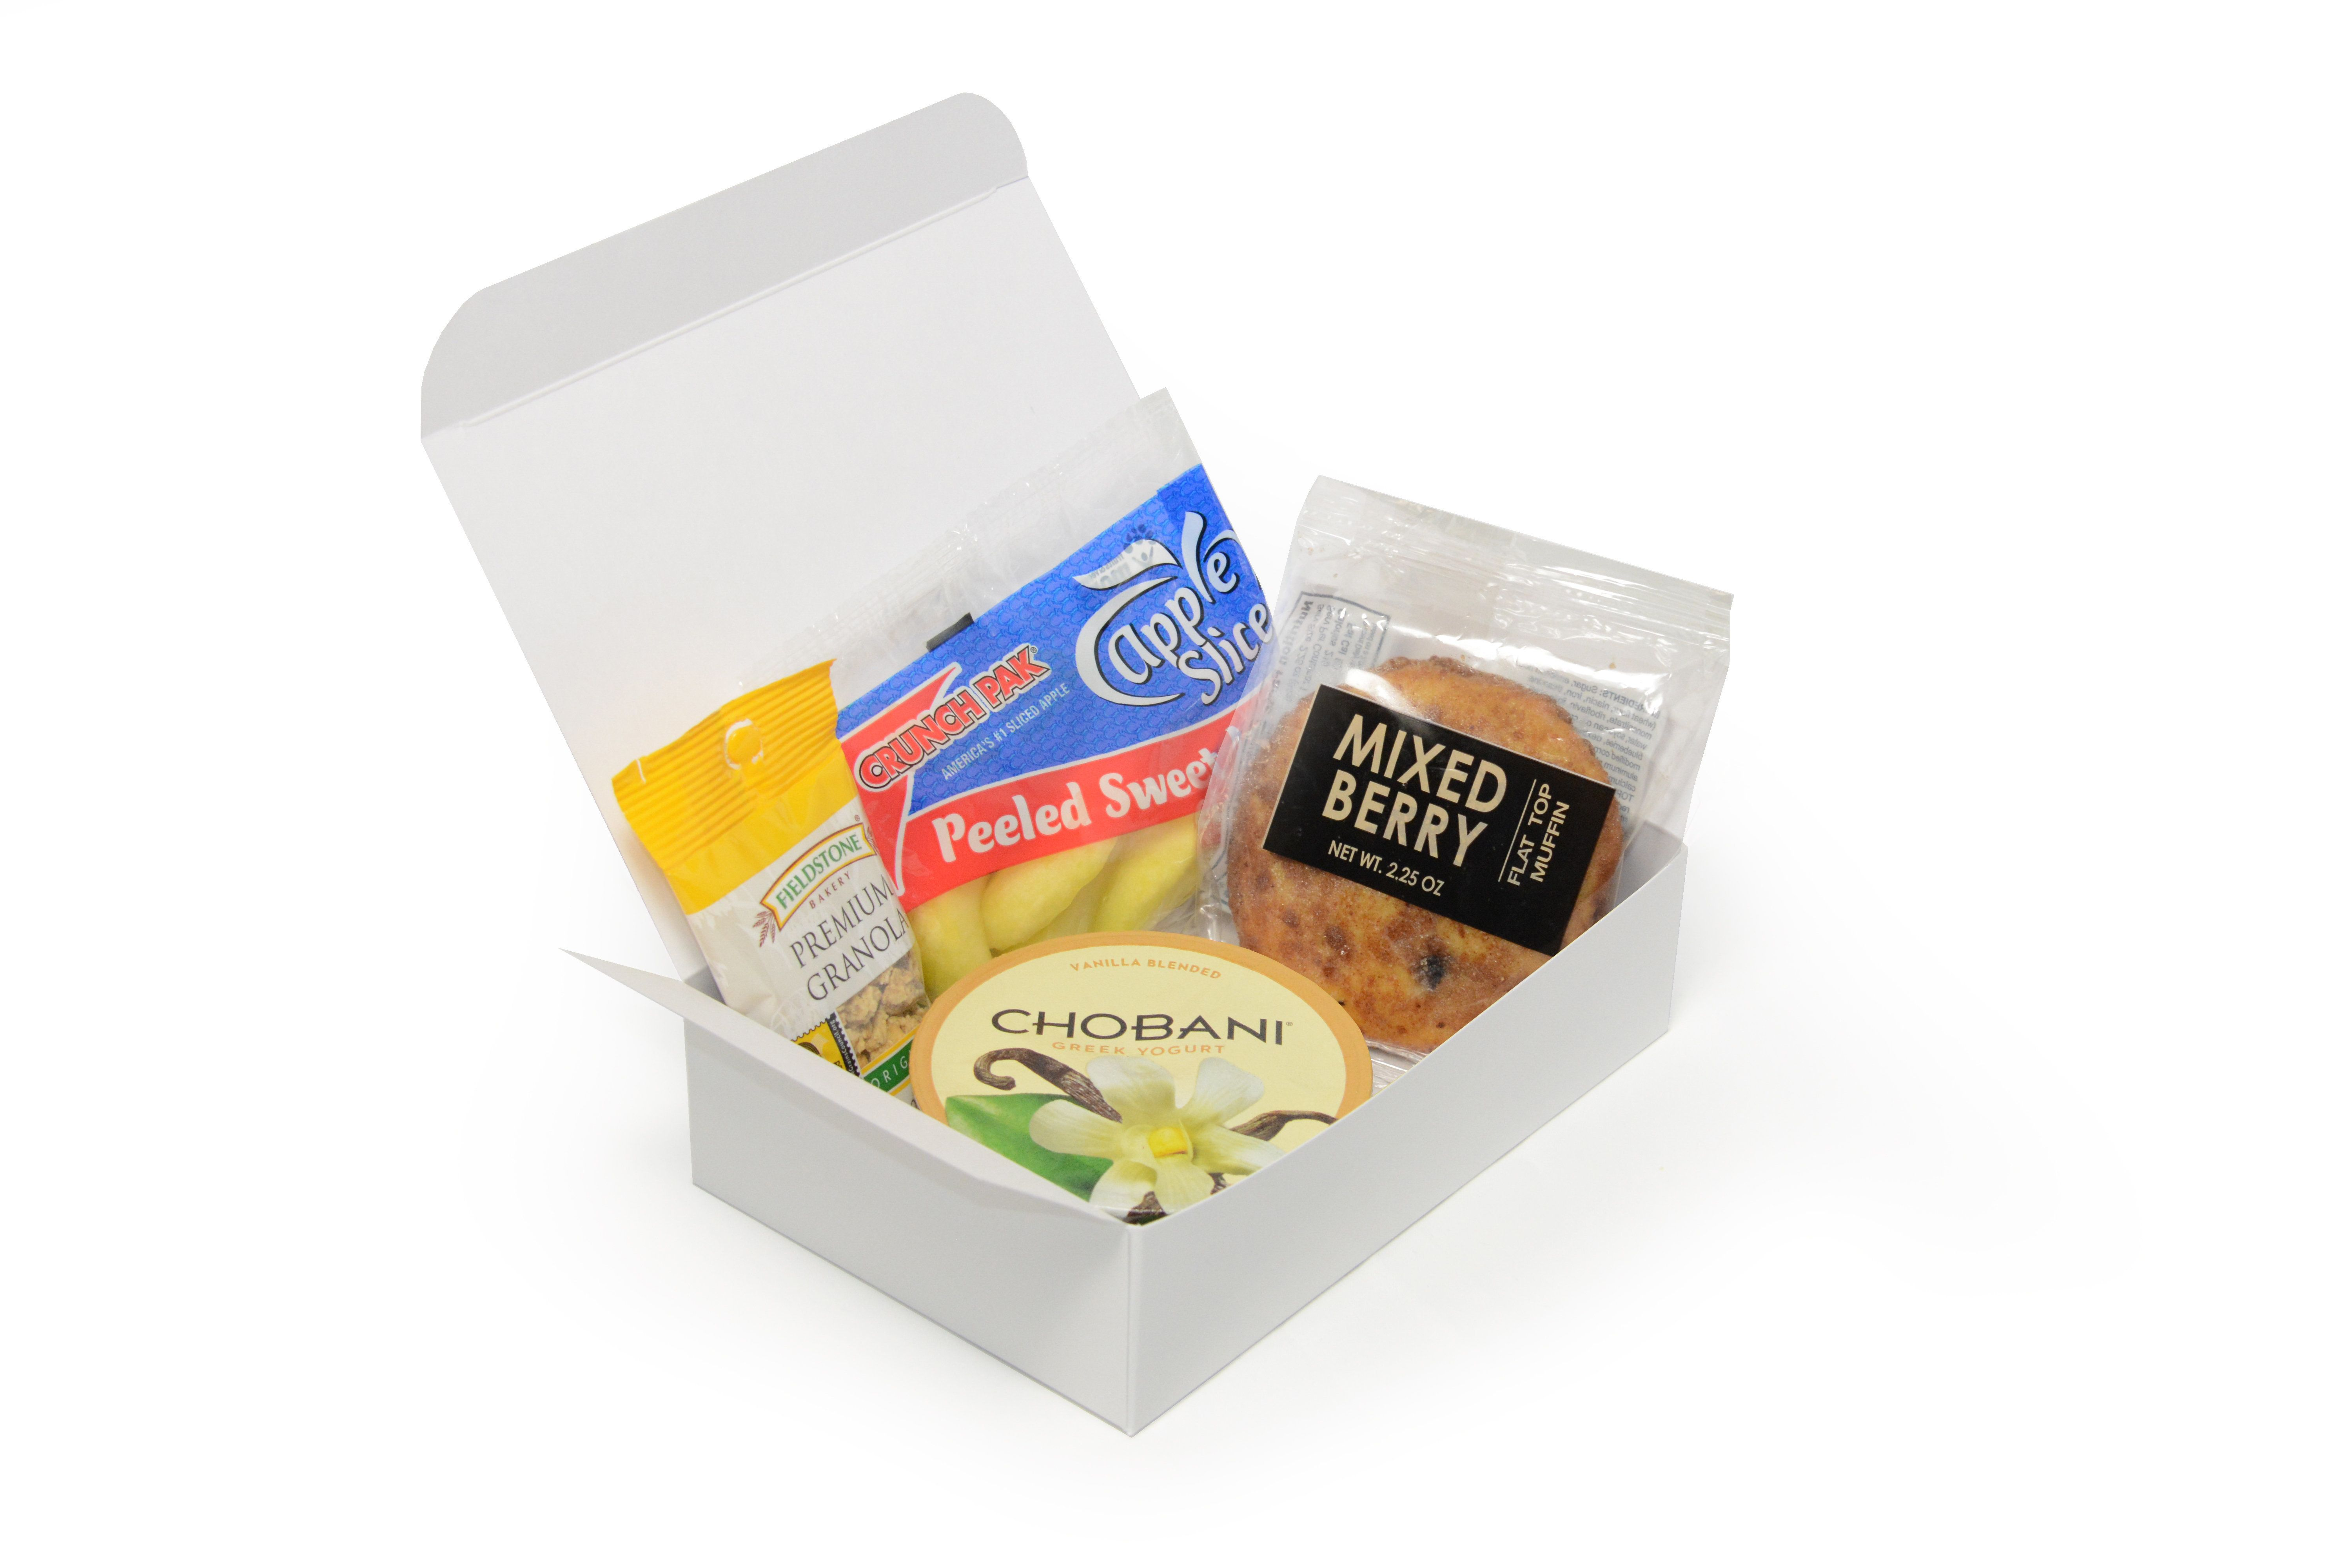 A continental breakfast box could include Chobani yogurt and something to do for 20 minutes.